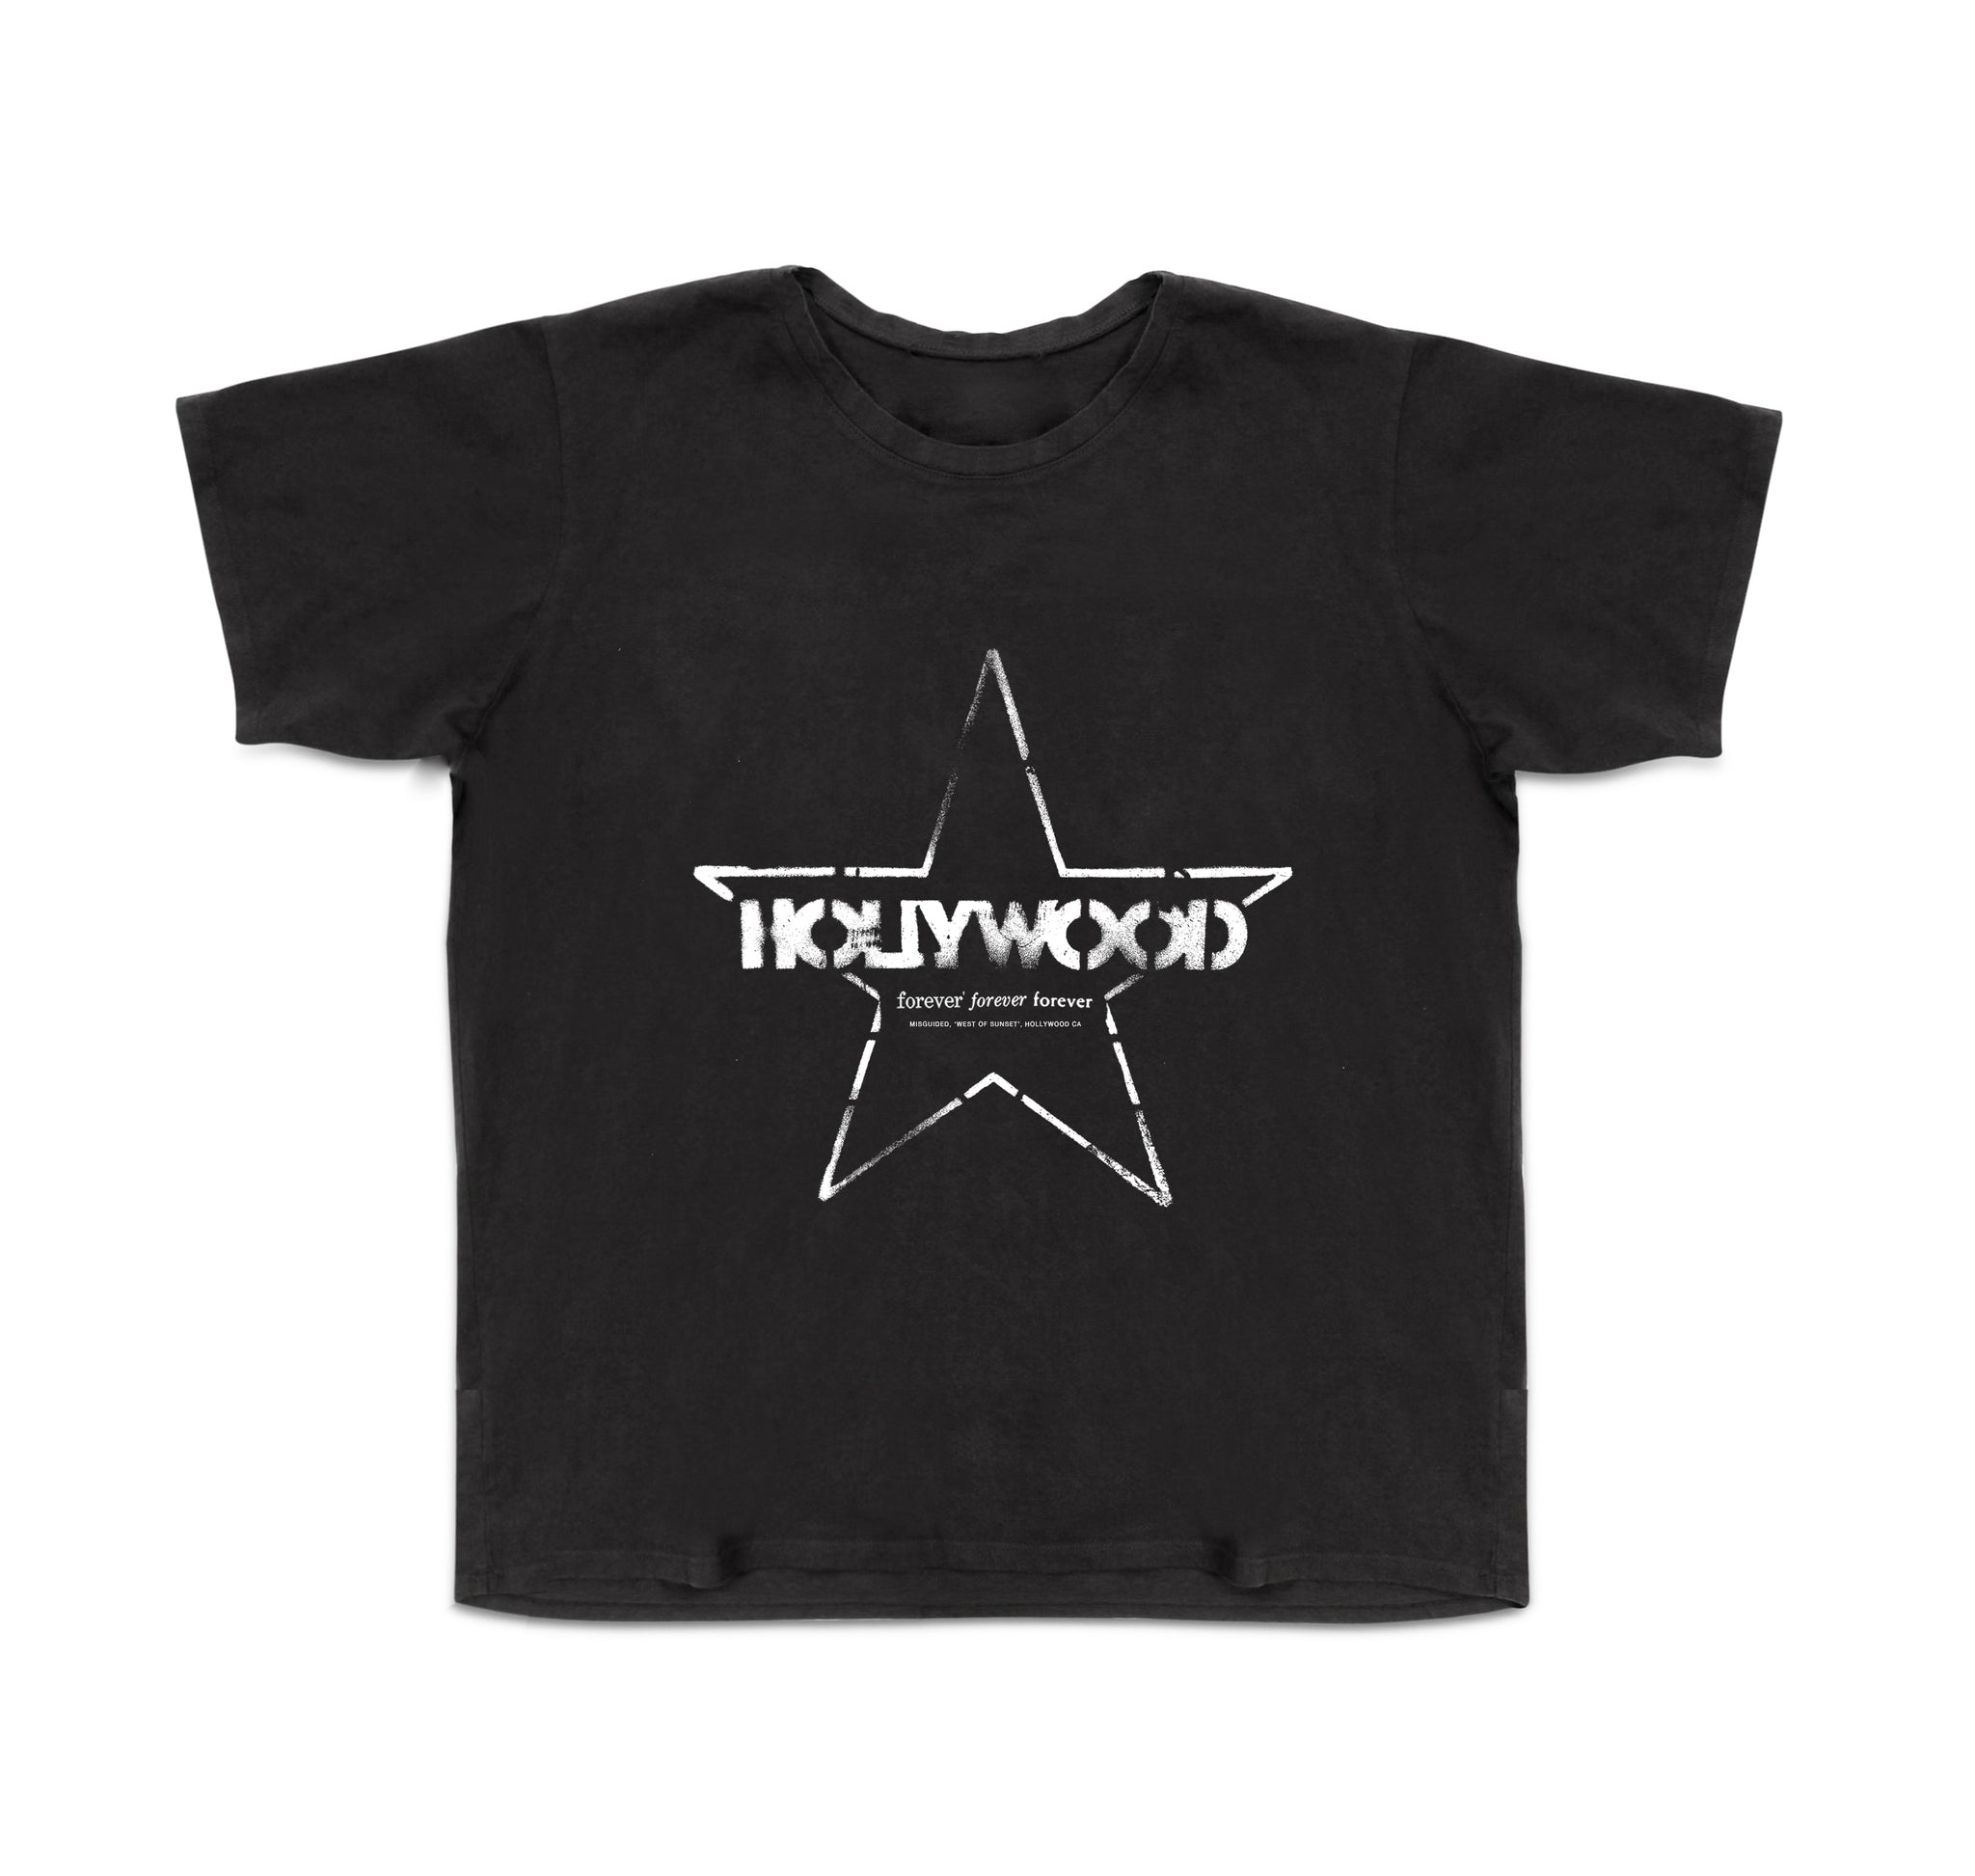 Hollywood Tee (Black)